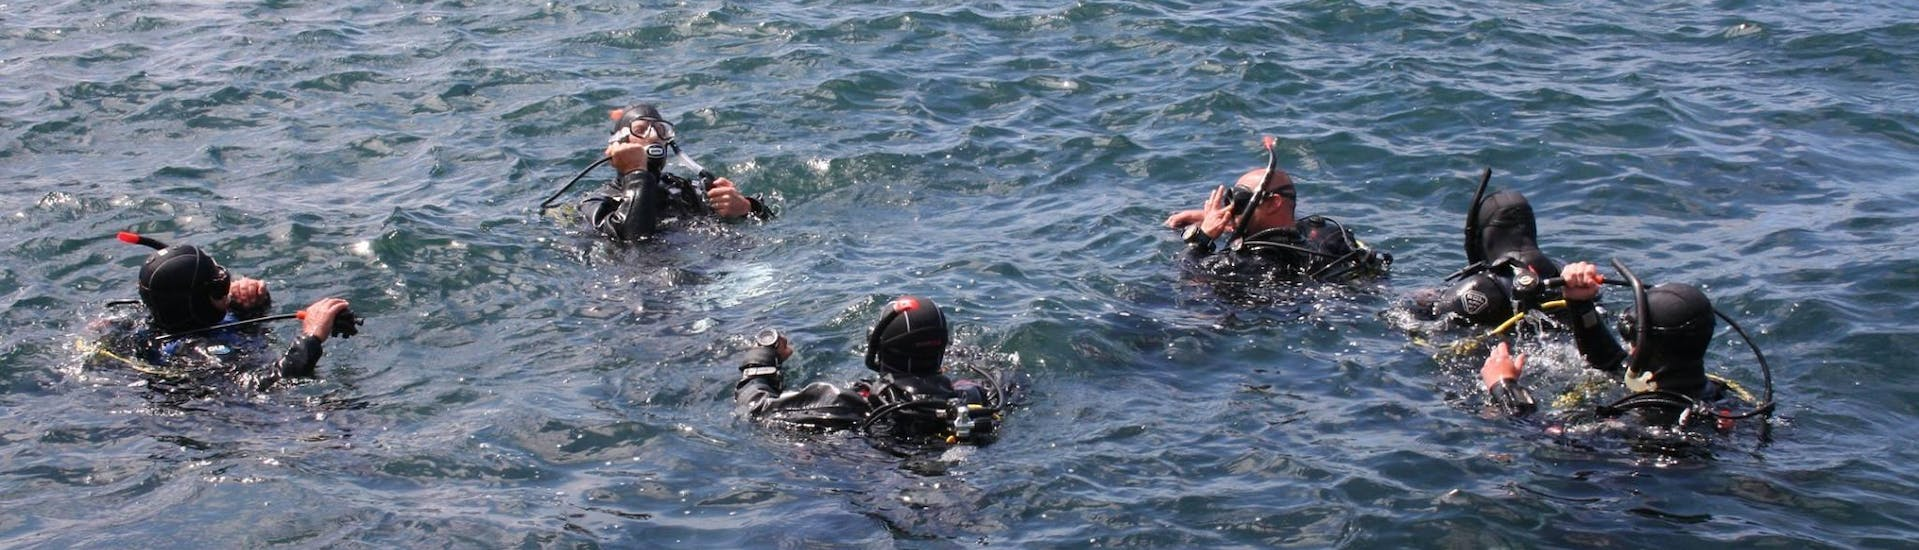 The participants of the Trial Scuba Diving for Beginners in Saint Paul's Bay with Octopus Garden Diving Centre in Malta are getting ready for their first dive.